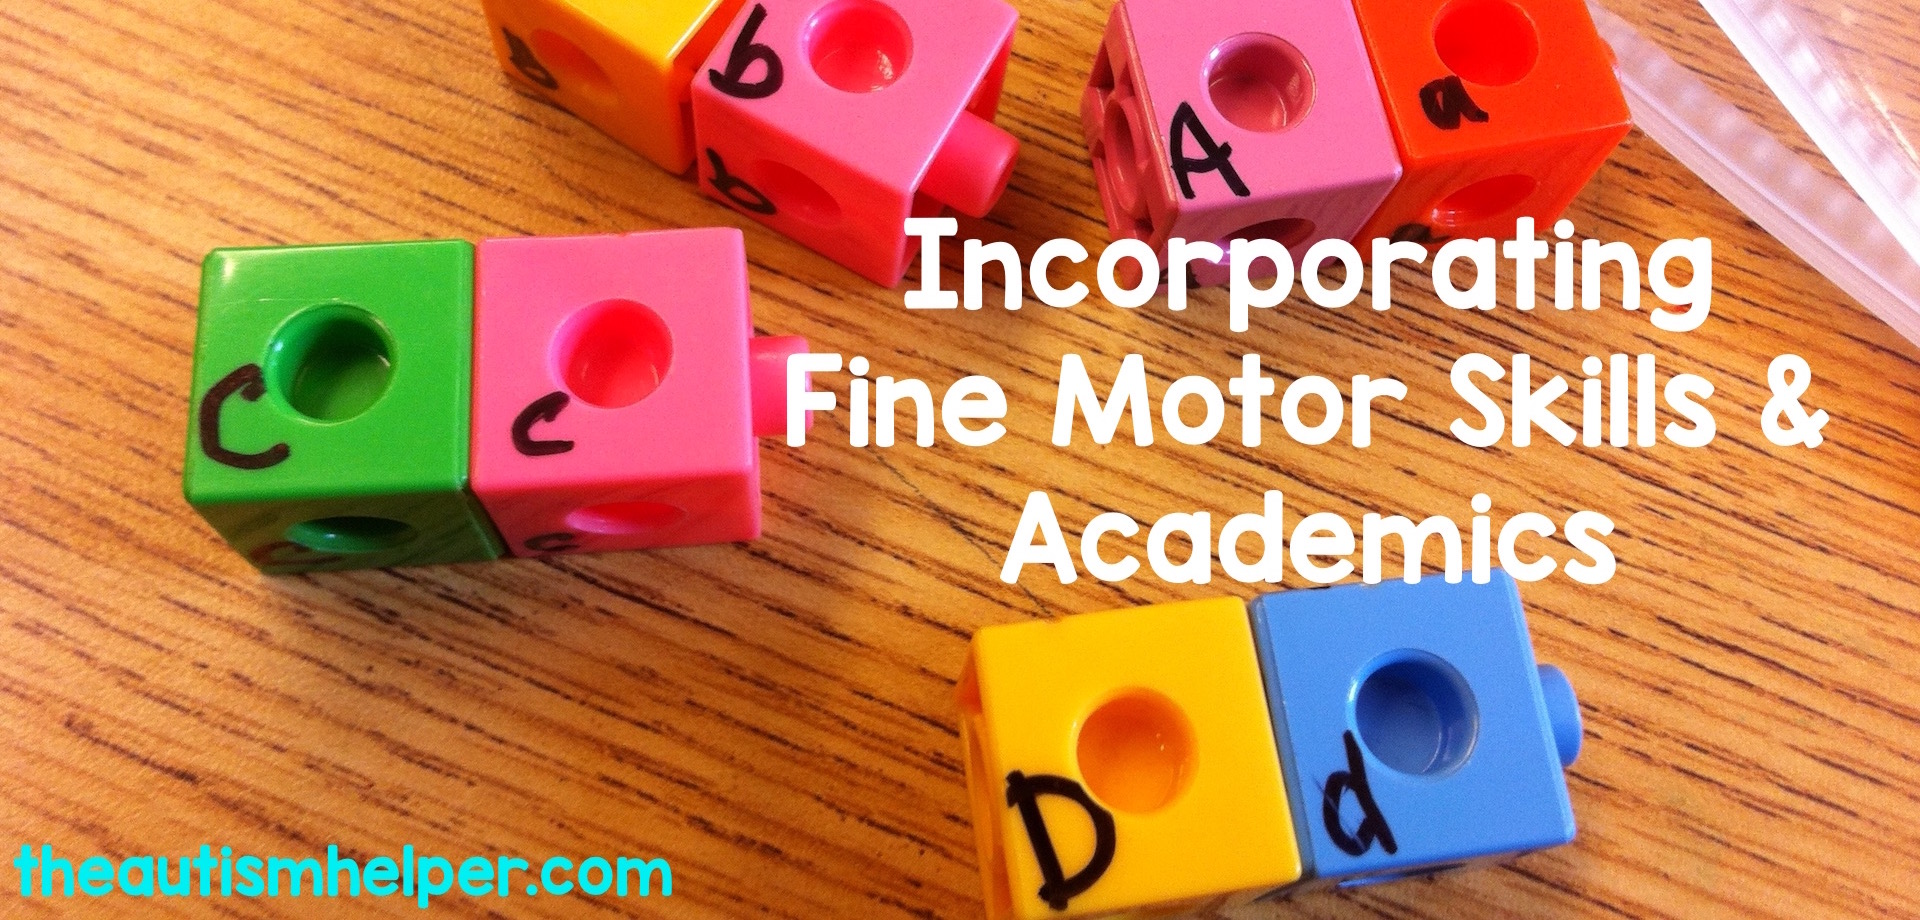 Incorporate fine motor skills into academic learning for your special education students — because who has enough time to focus on just one skill at a time?